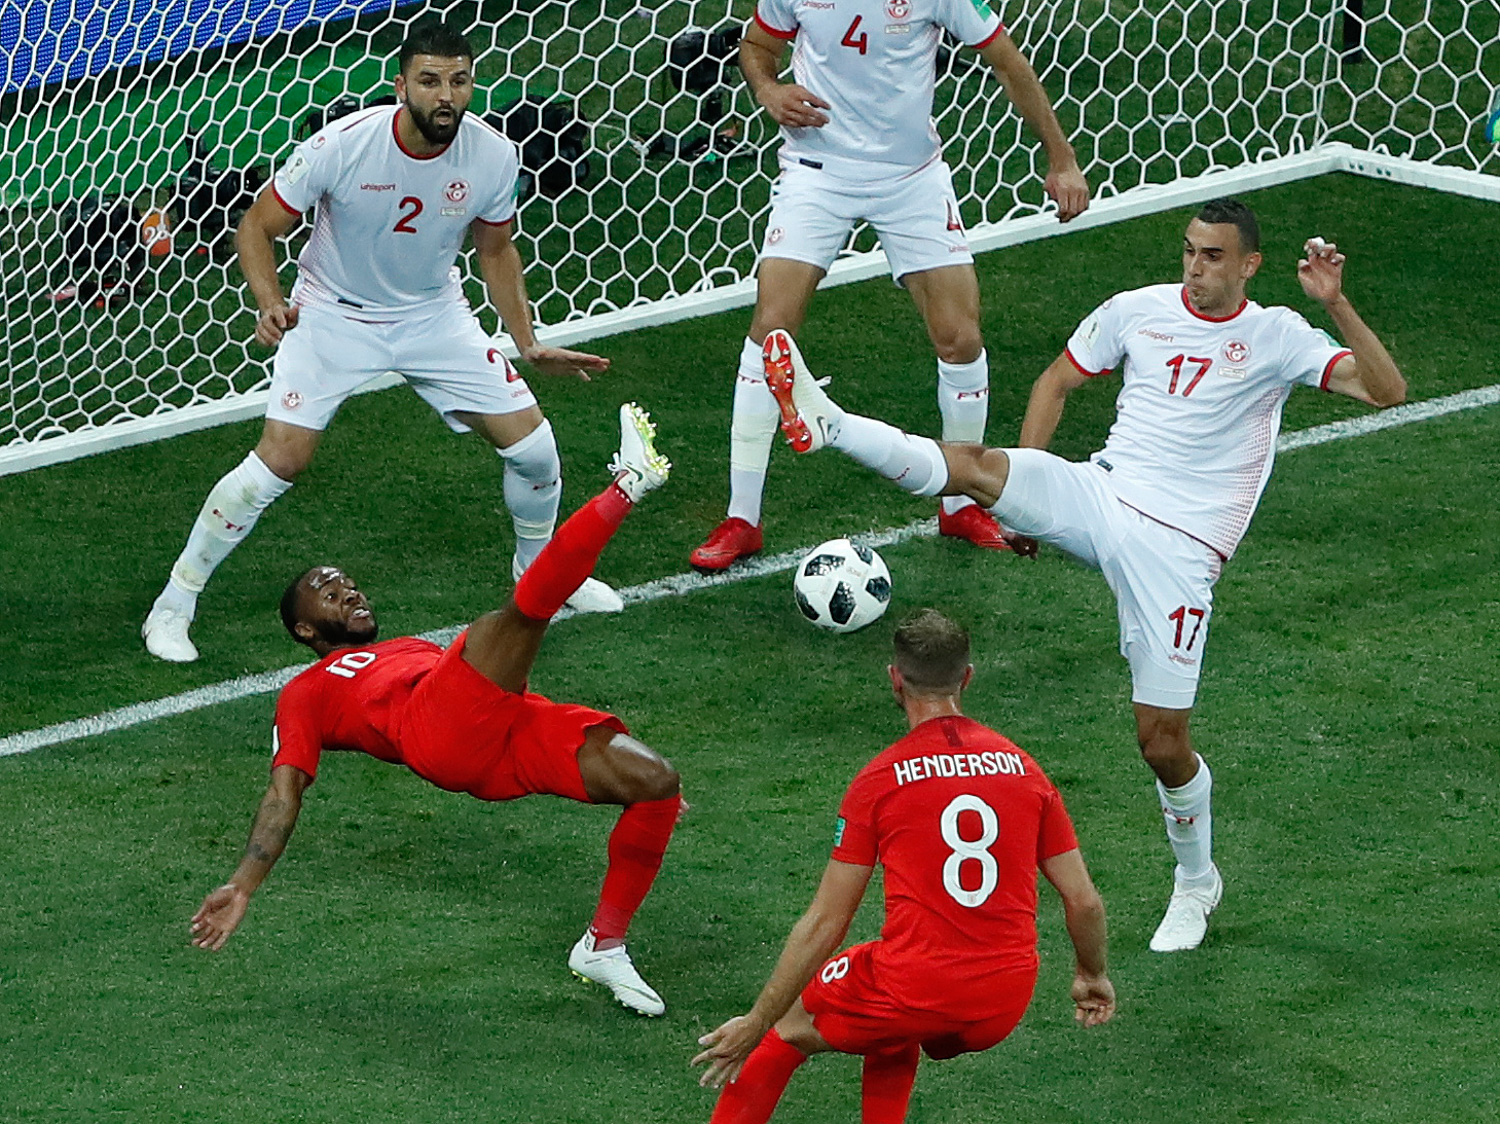 <div class='meta'><div class='origin-logo' data-origin='none'></div><span class='caption-text' data-credit='Rebecca Blackwell/AP Photo'>Tunisia's Ellyes Skhiri, right, and England's Raheem Sterling fight for the ball during the group G match between Tunisia and England</span></div>